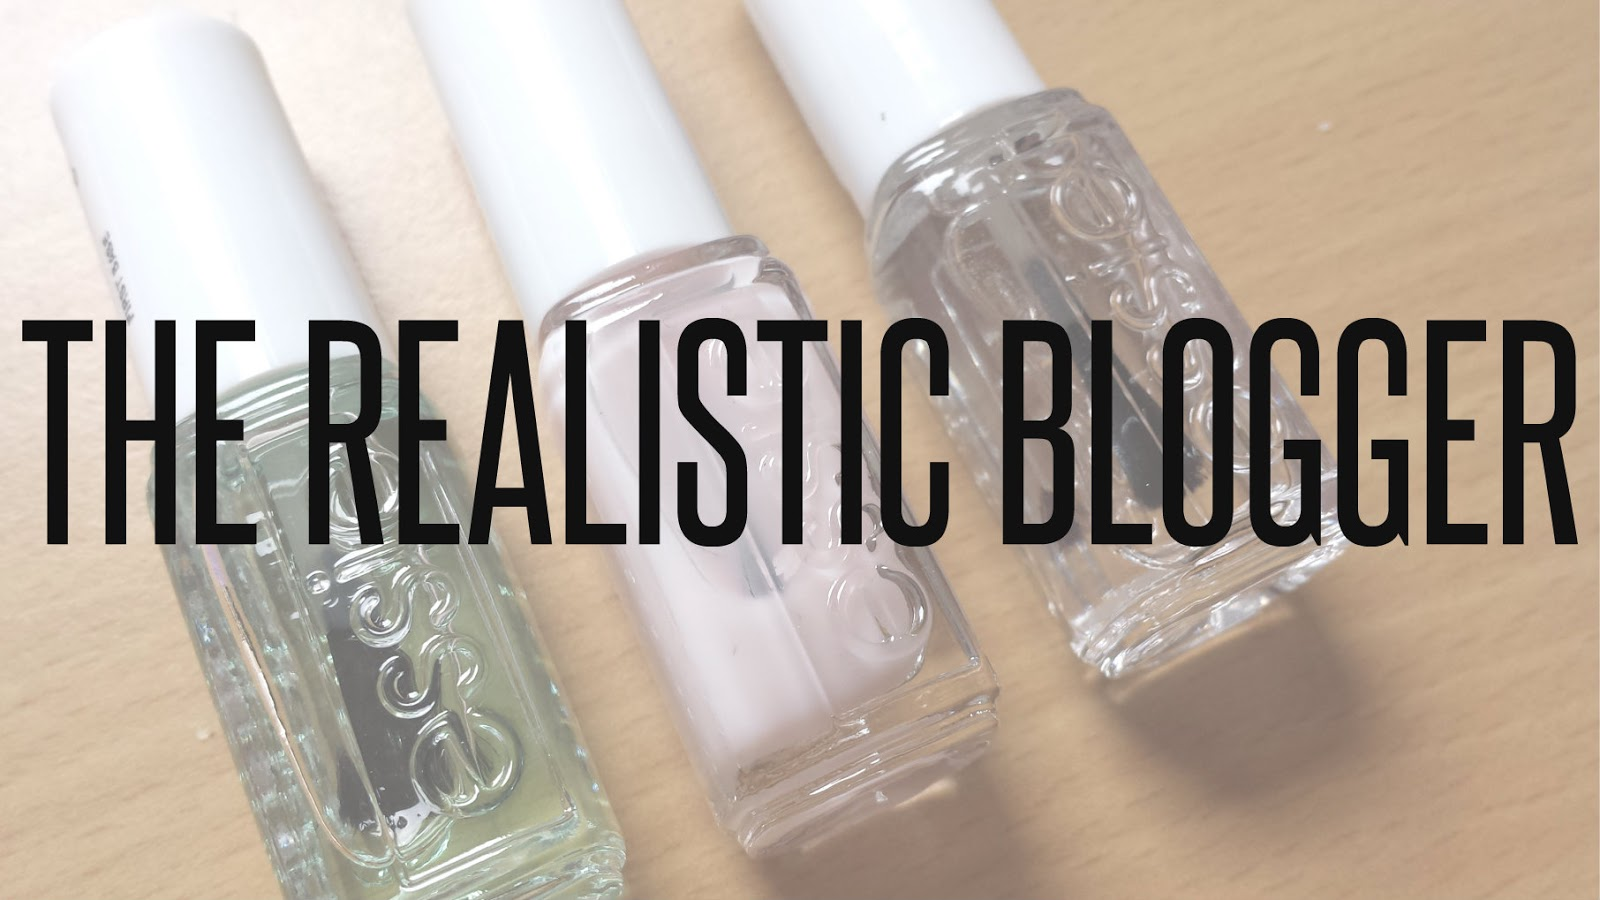 THE REALISTIC BLOGGER